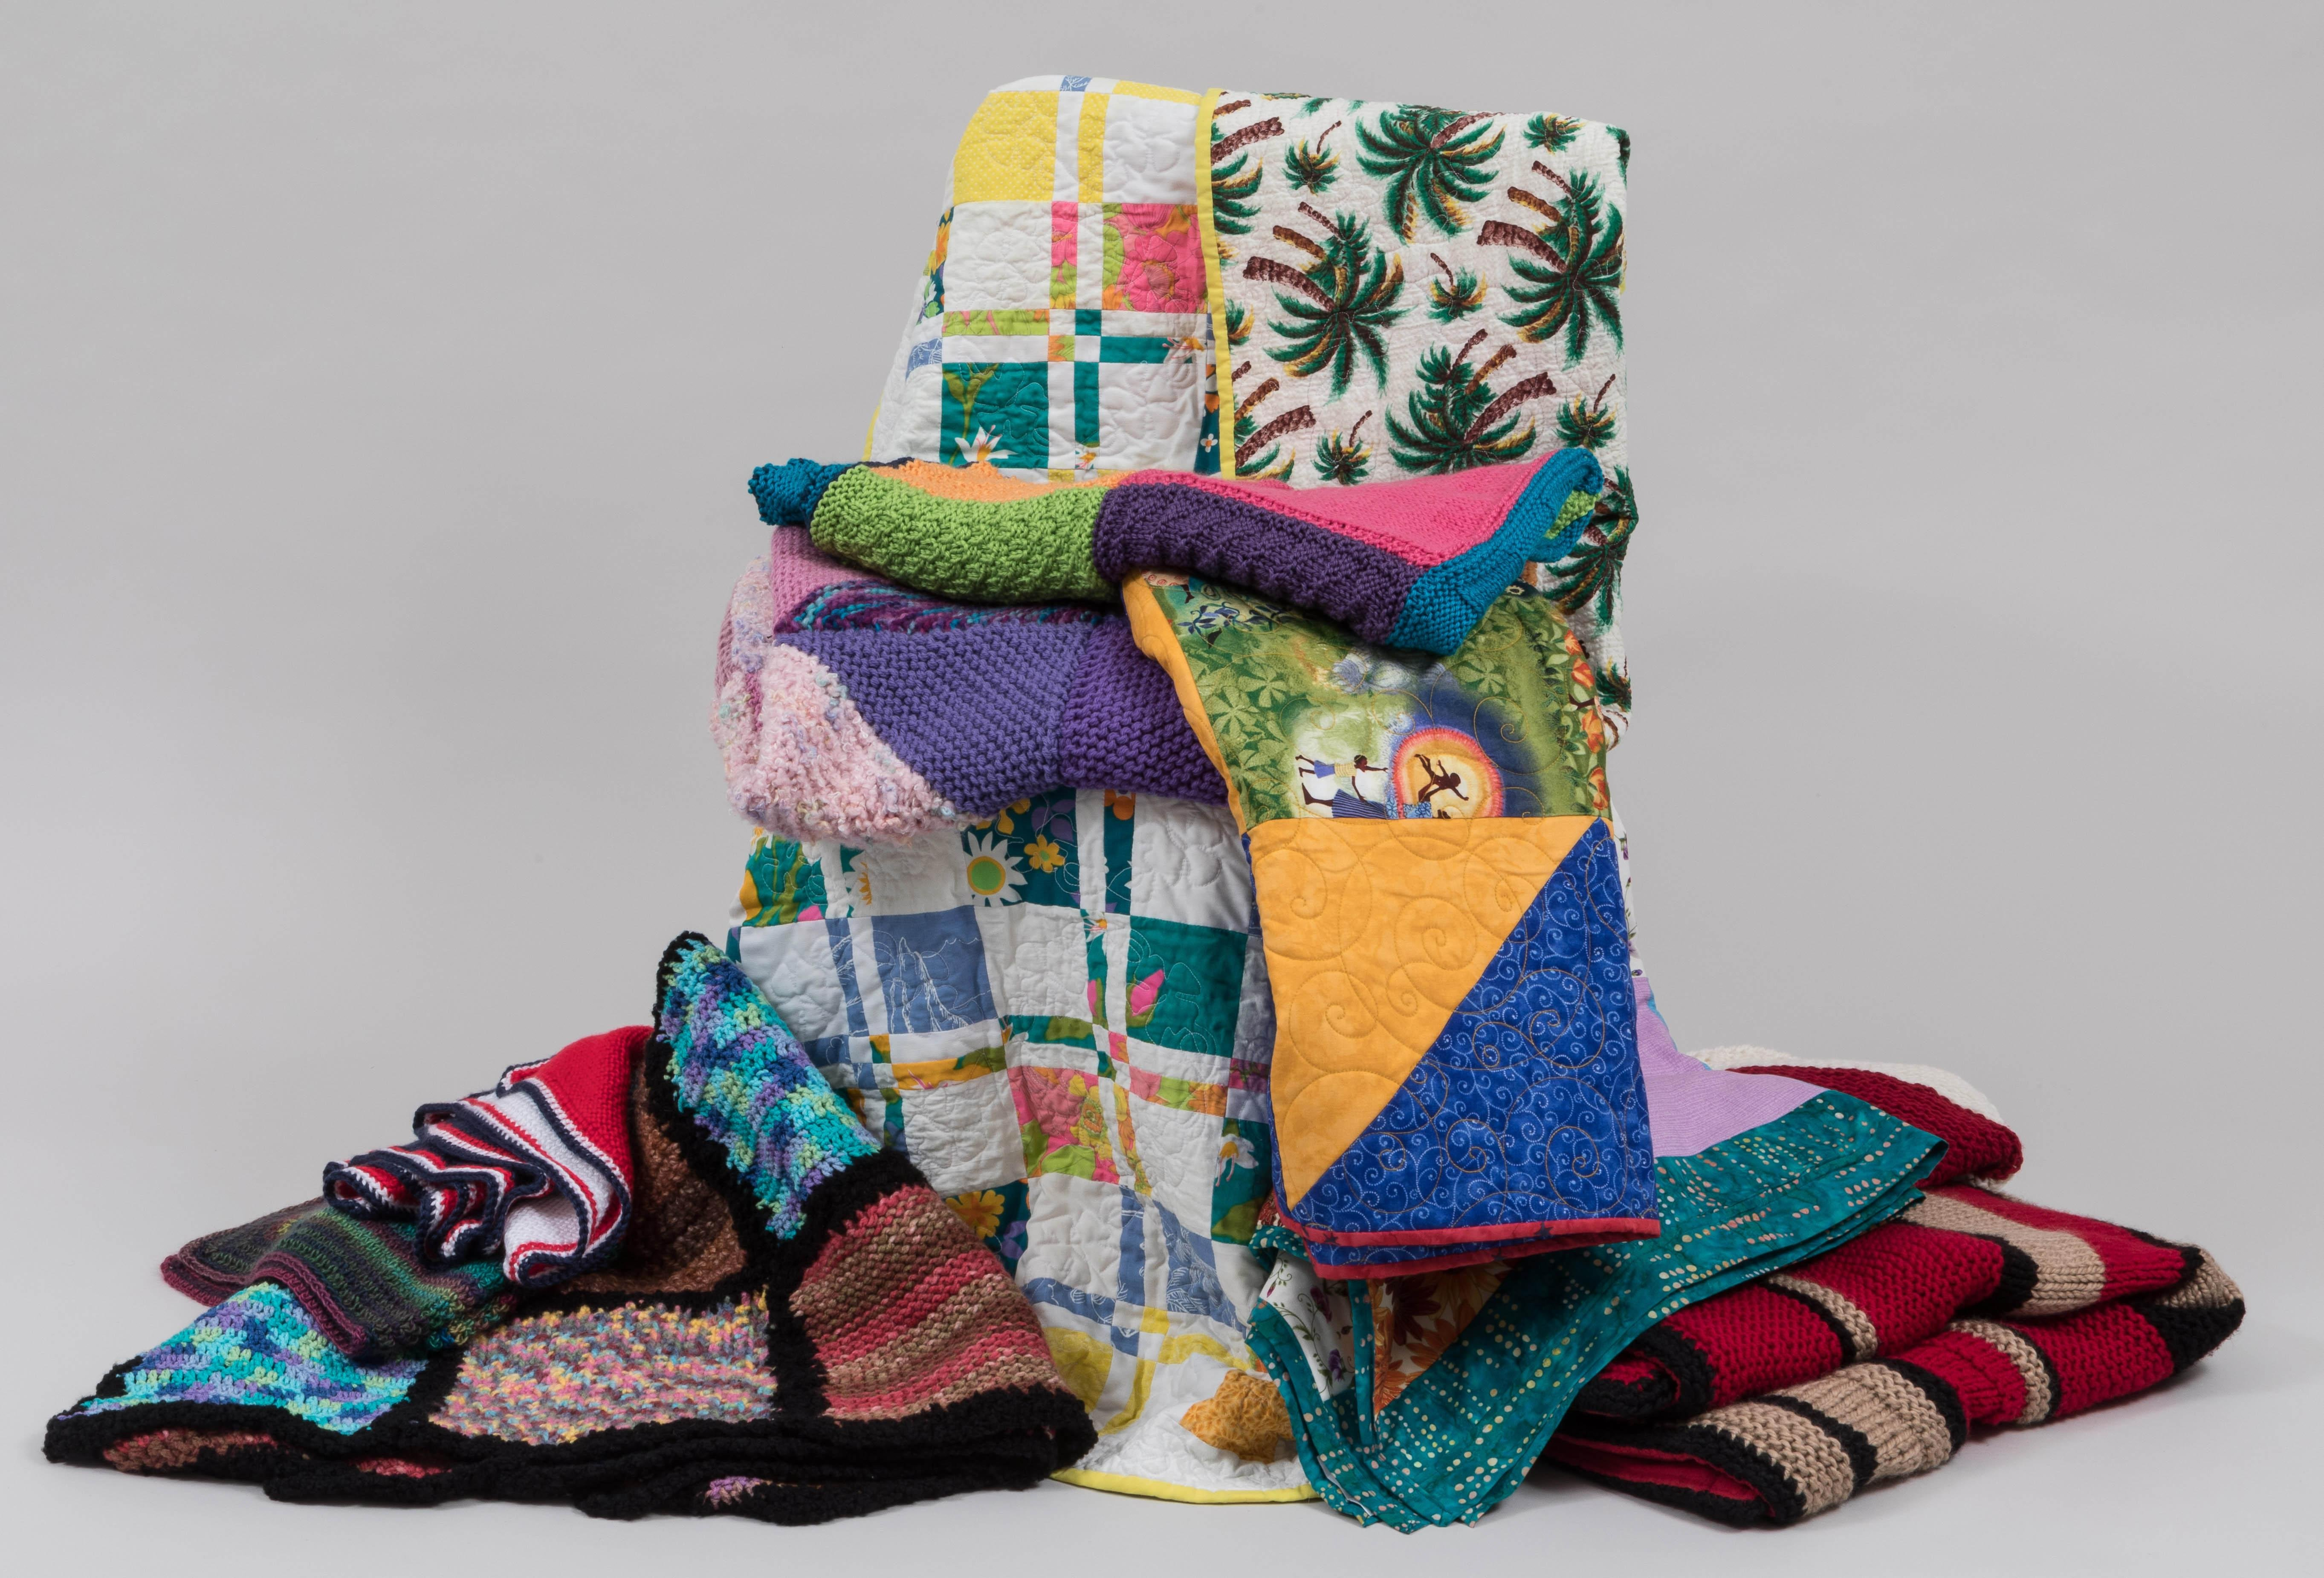 The Welcome Blanket project hopes to collect more than 3,000 handmade blankets by Nov. 4 to put on display at the Smart Museum of Art before they are given as gifts to new immigrants.  (Courtesy of the Smart Museum of Art at the University of Chicago)